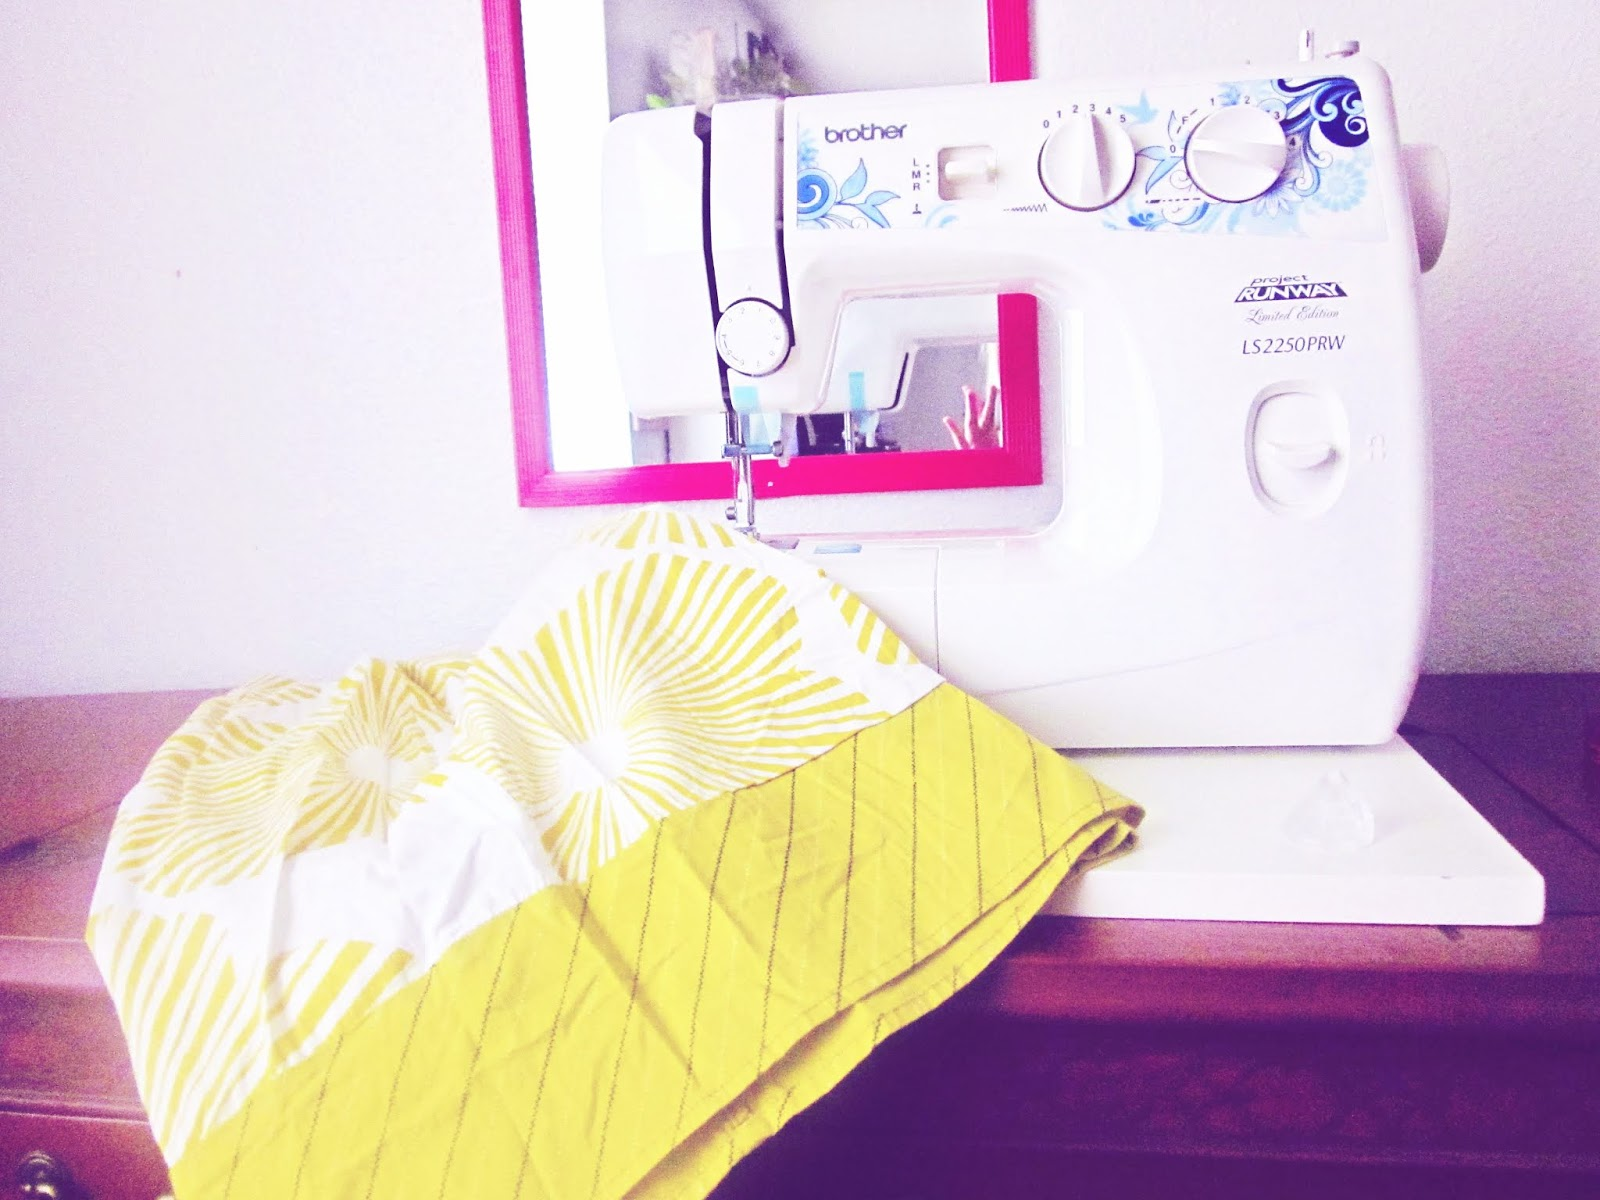 hot pink Brother Sewing Machine with yellow fabric and threads